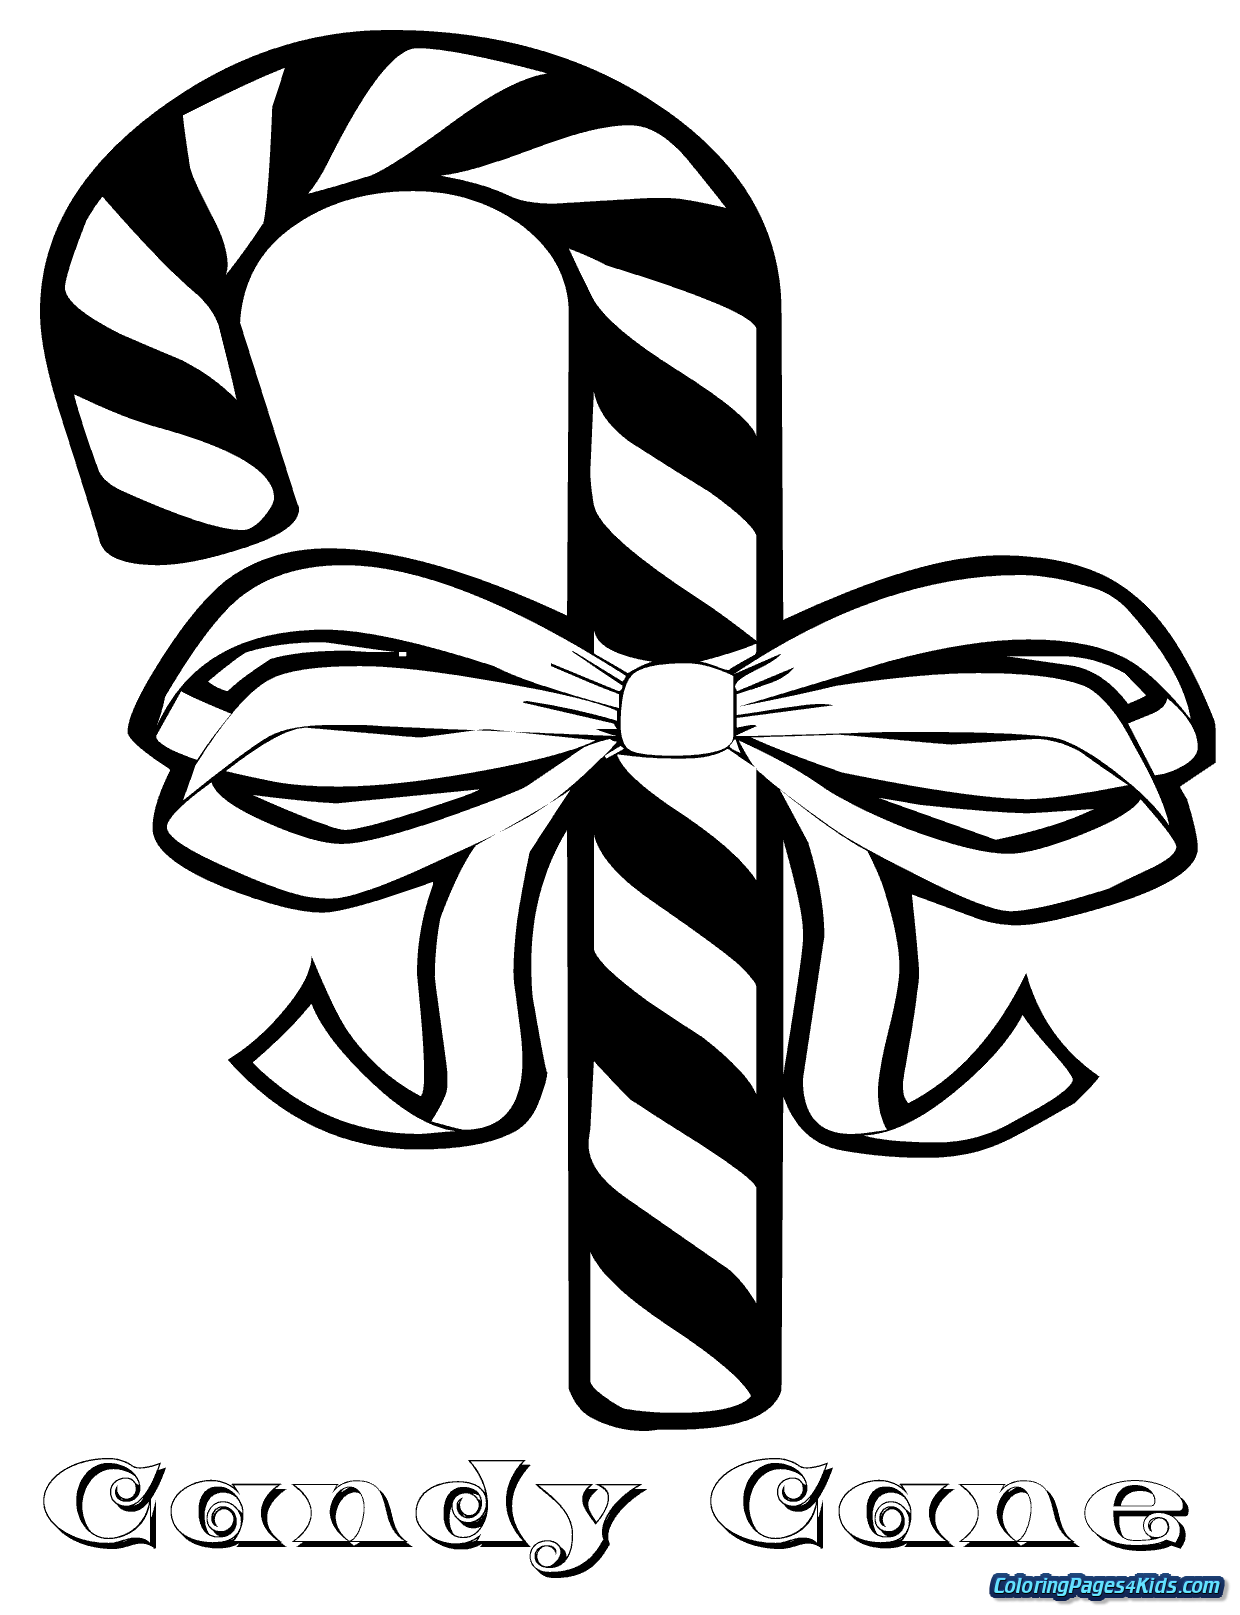 Christmas Coloring Pages Of Candy Canes With Cane Page For Kids